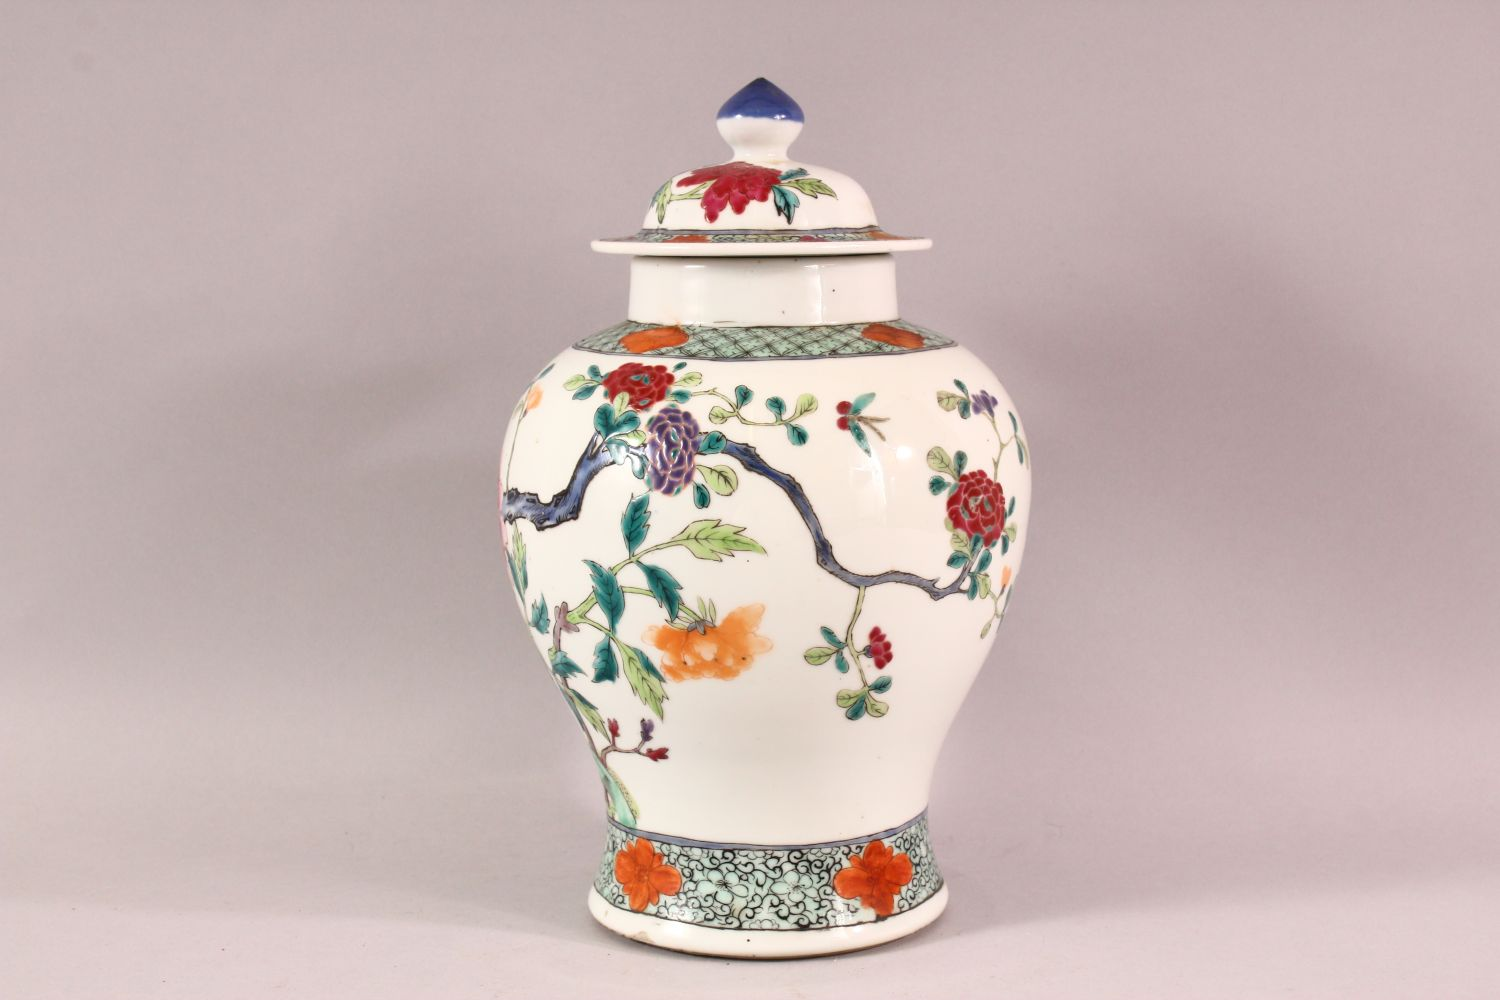 A CHINESE FAMILLE ROSE PORCELAIN JAR & COVER - decorated with scenes of native floral landscape - Image 4 of 8